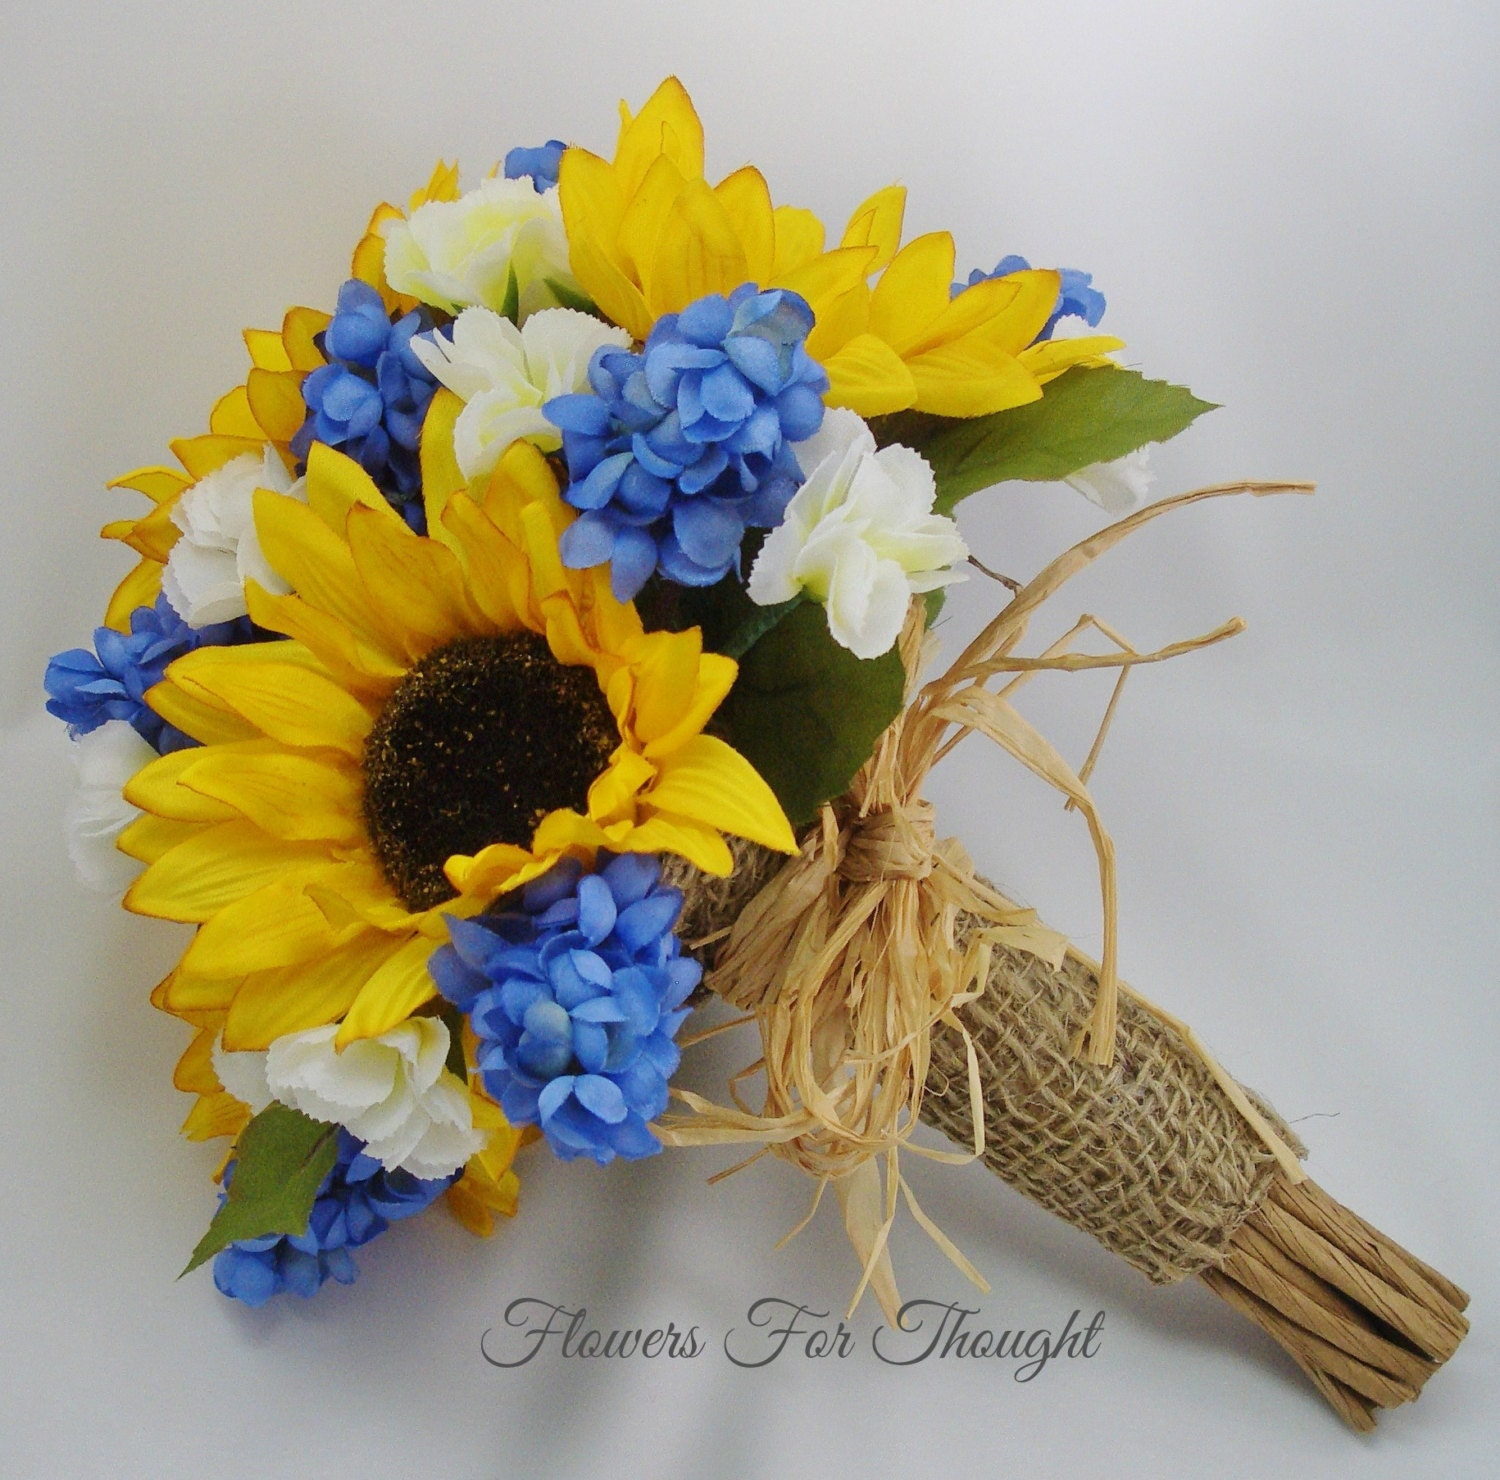 Sunflower bouquet with blue hyacinth rustic wedding flowers zoom izmirmasajfo Image collections